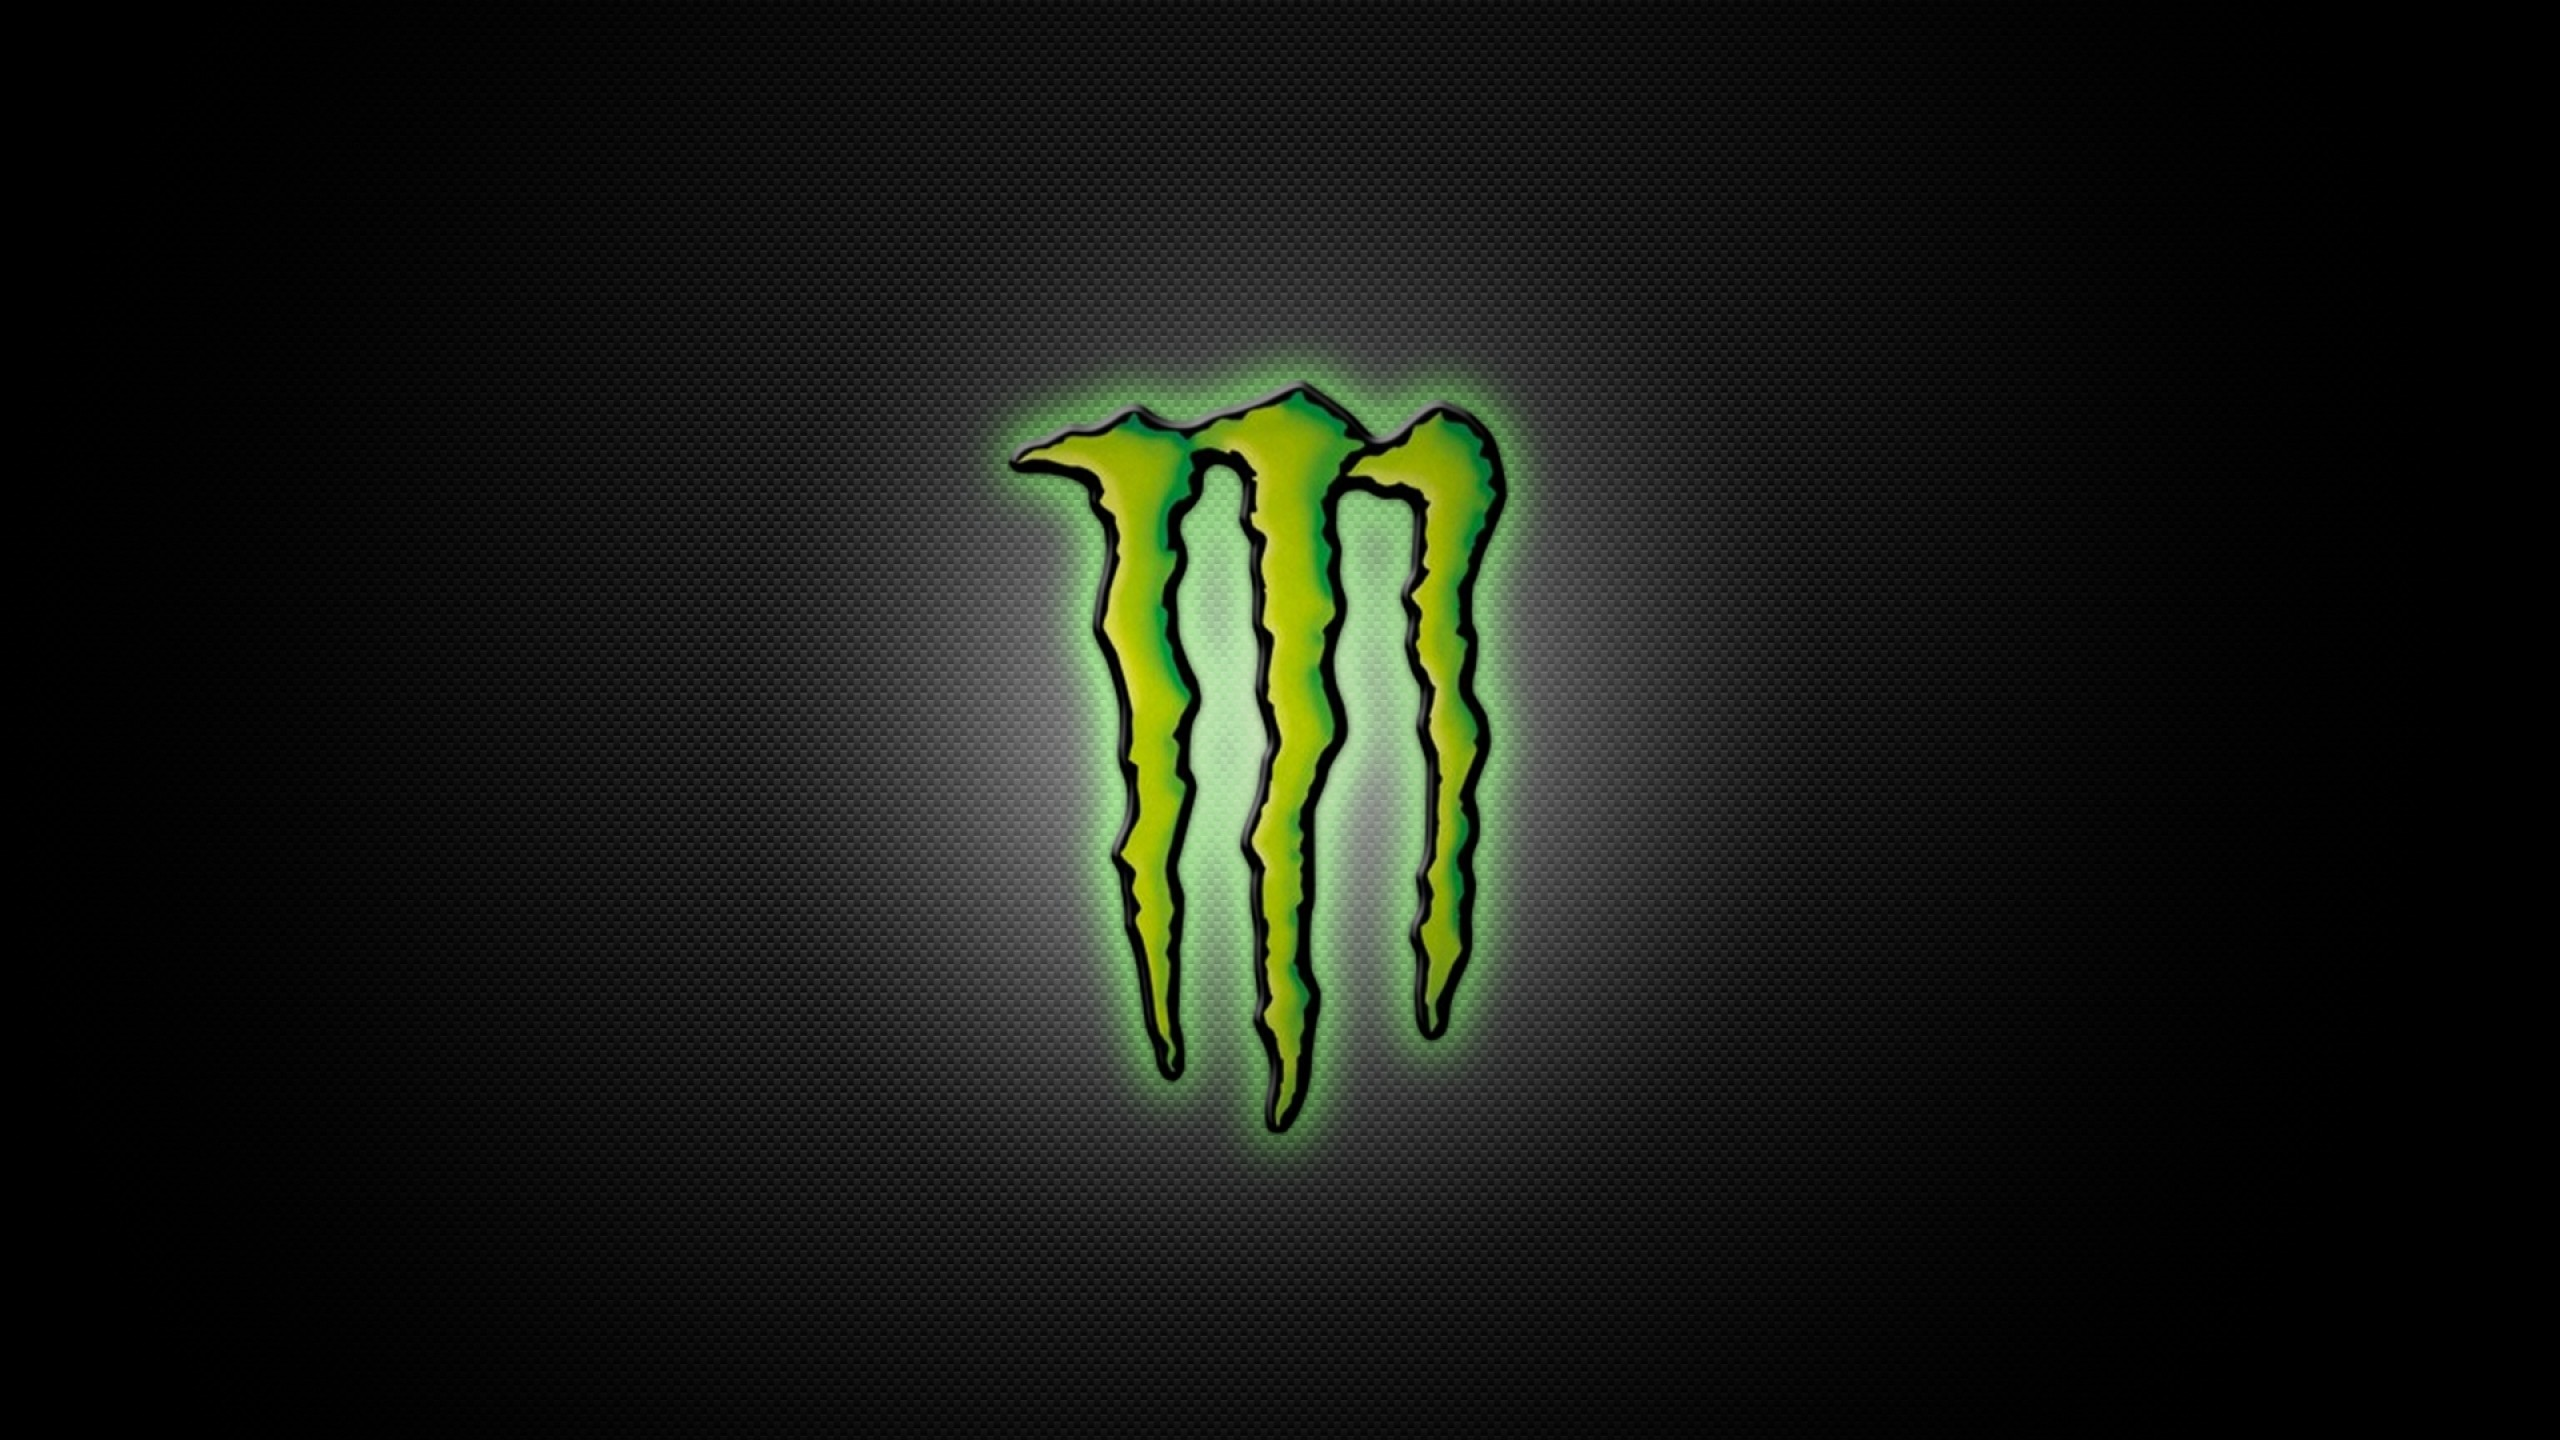 2560x1440 monster energy wallpapers pictures images rh hdwallpaper nu Monster Energy  Logo Wallpaper Monster Energy Drink Wallpaper